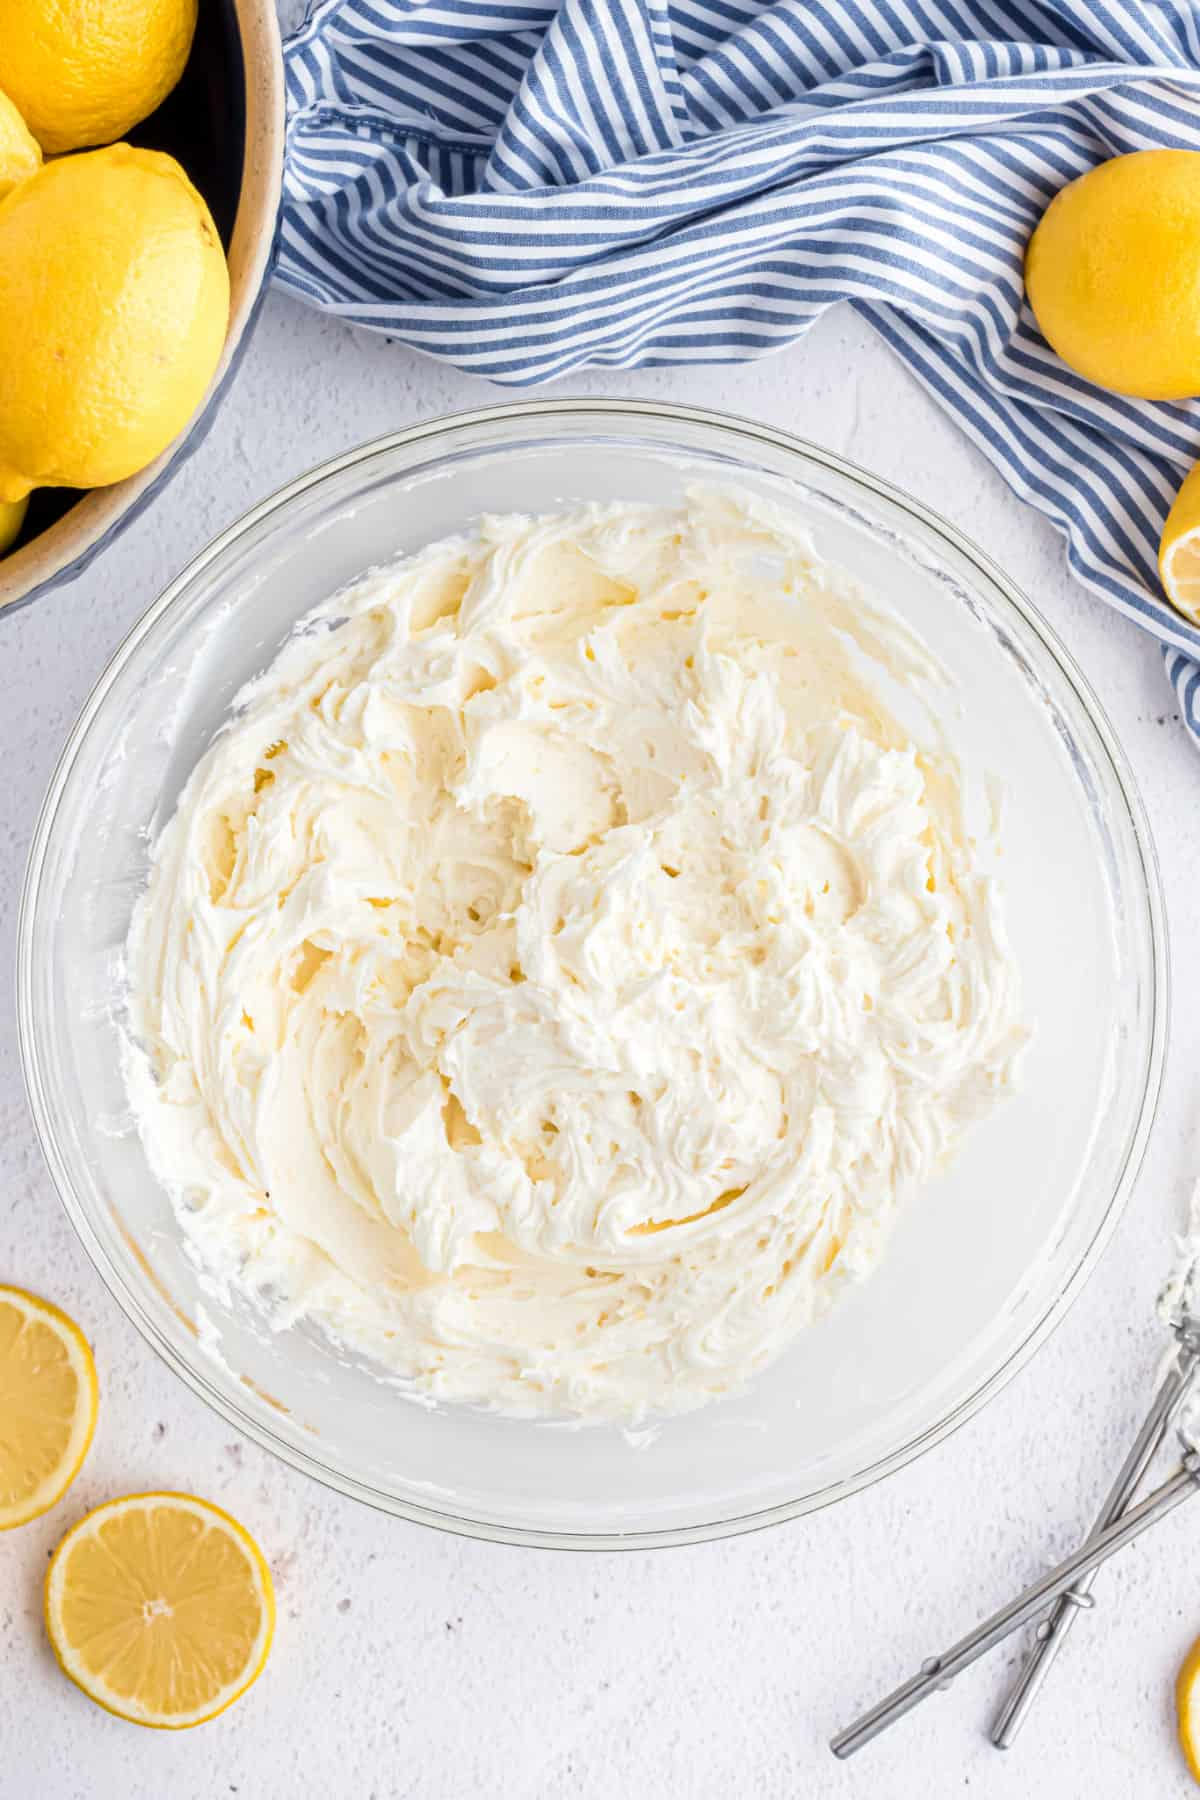 Creamy lemon frosting in a clear glass bowl.